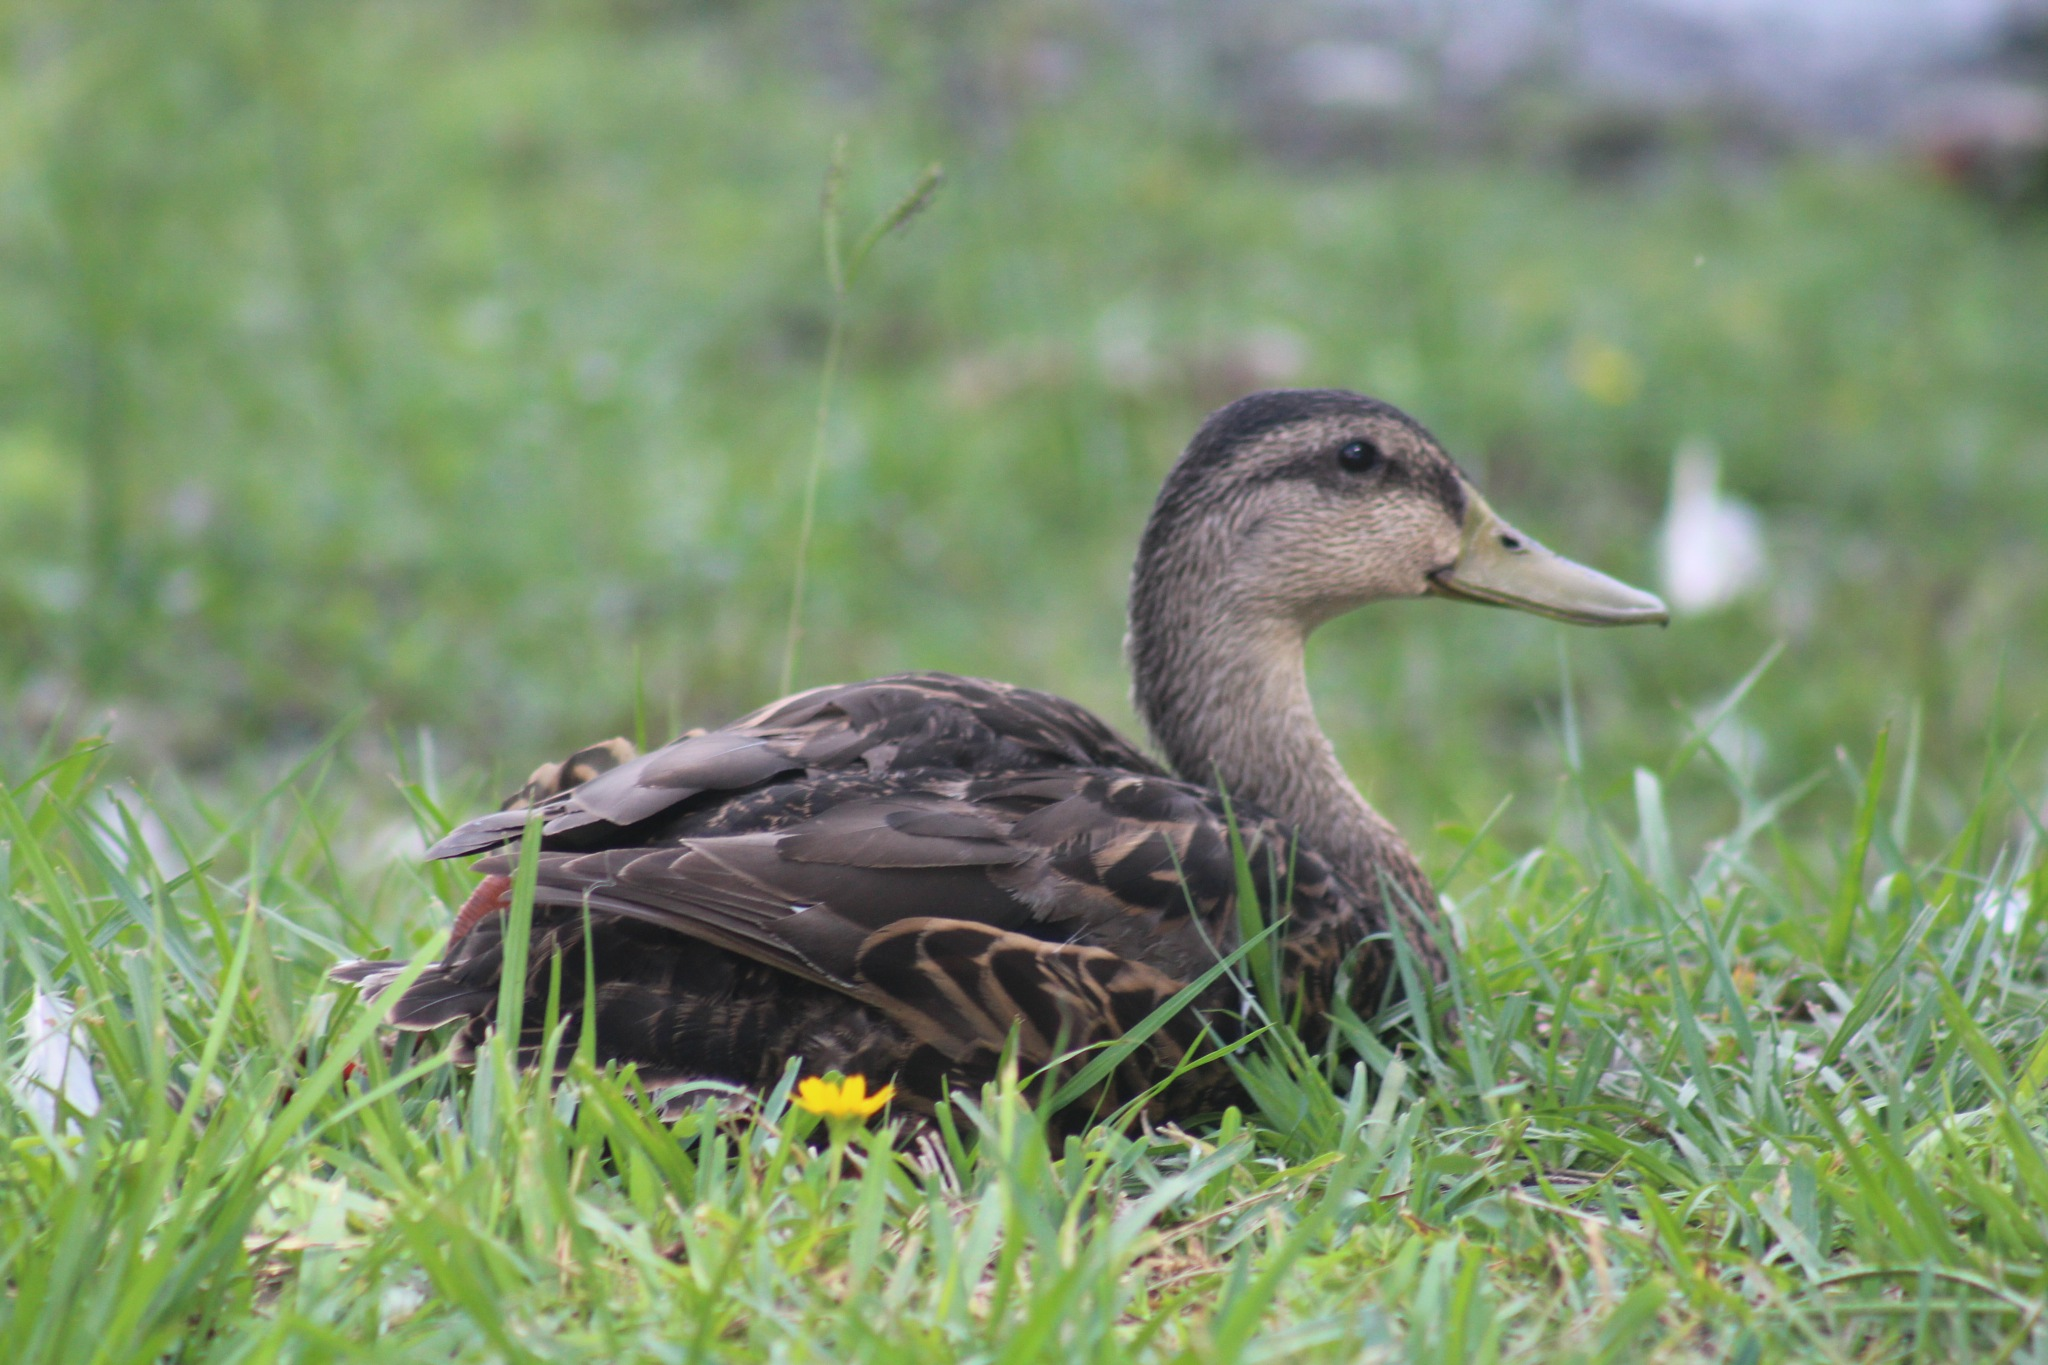 Duck  in the grass by Diane.Mumbower